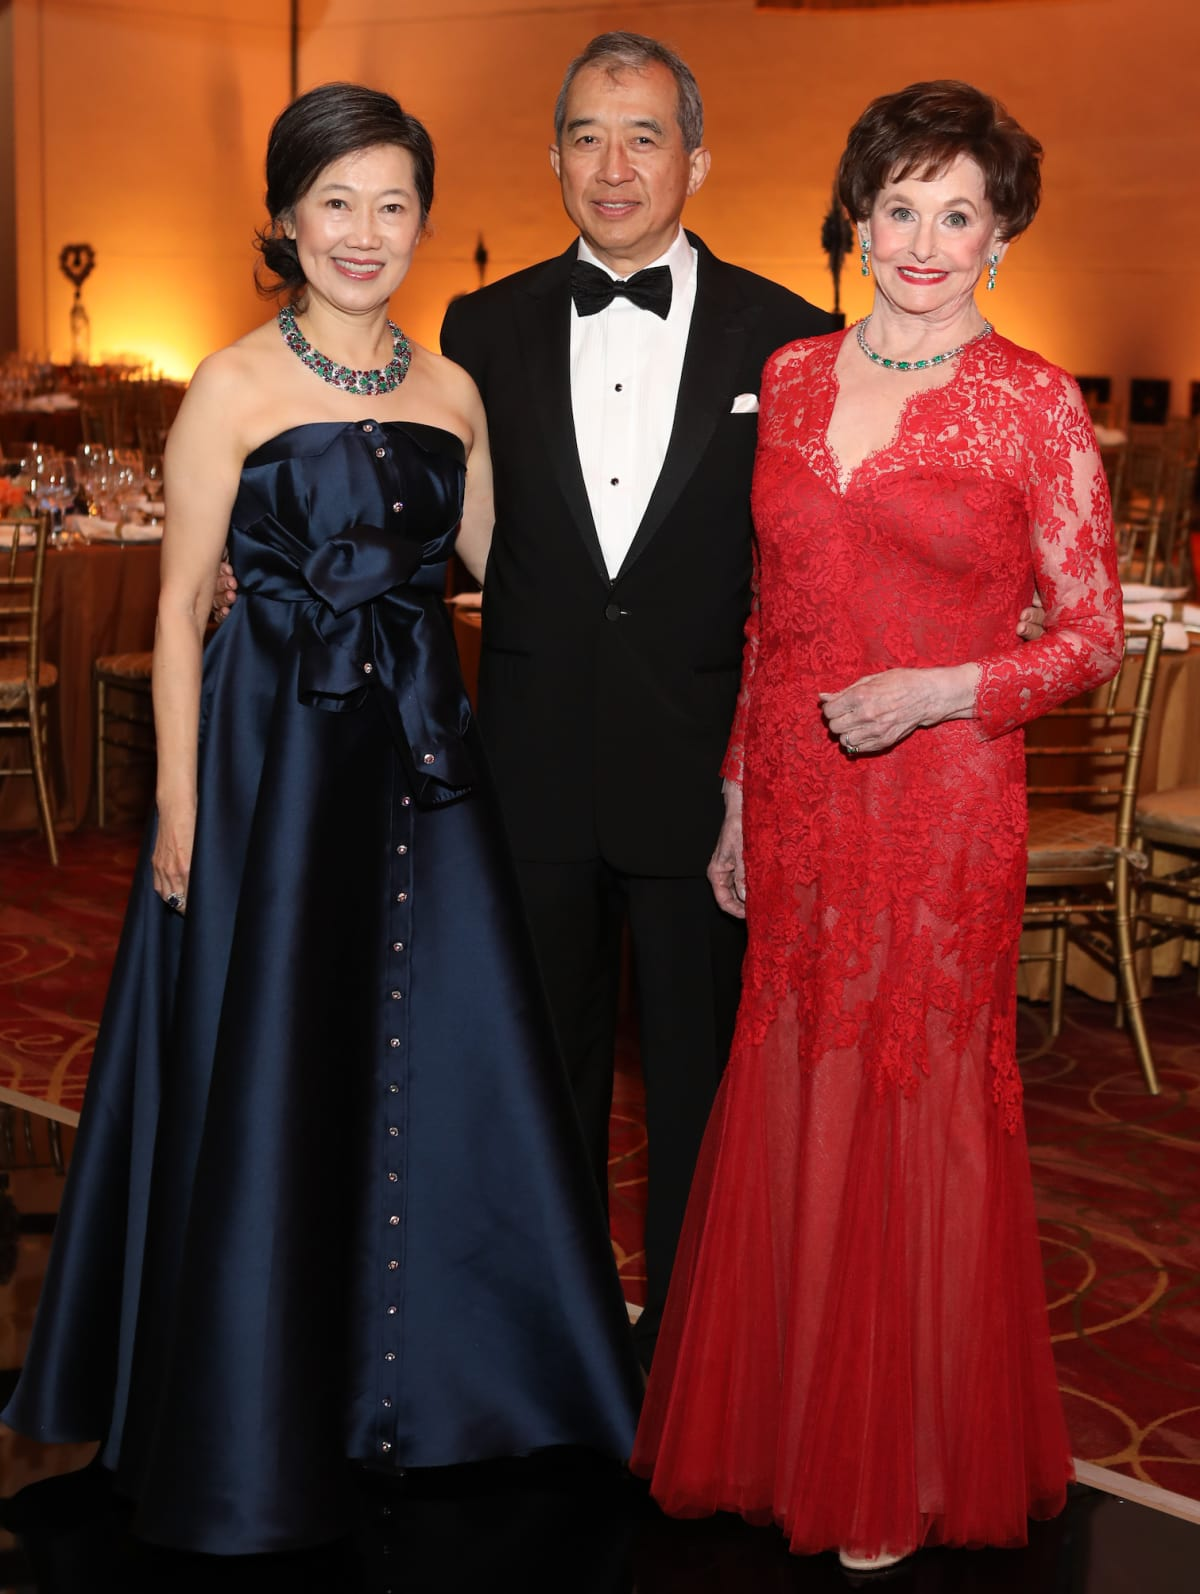 Houston, Ballet Ball social story, March 2017, Anne Chao, Albert Chao, Ann Trammell